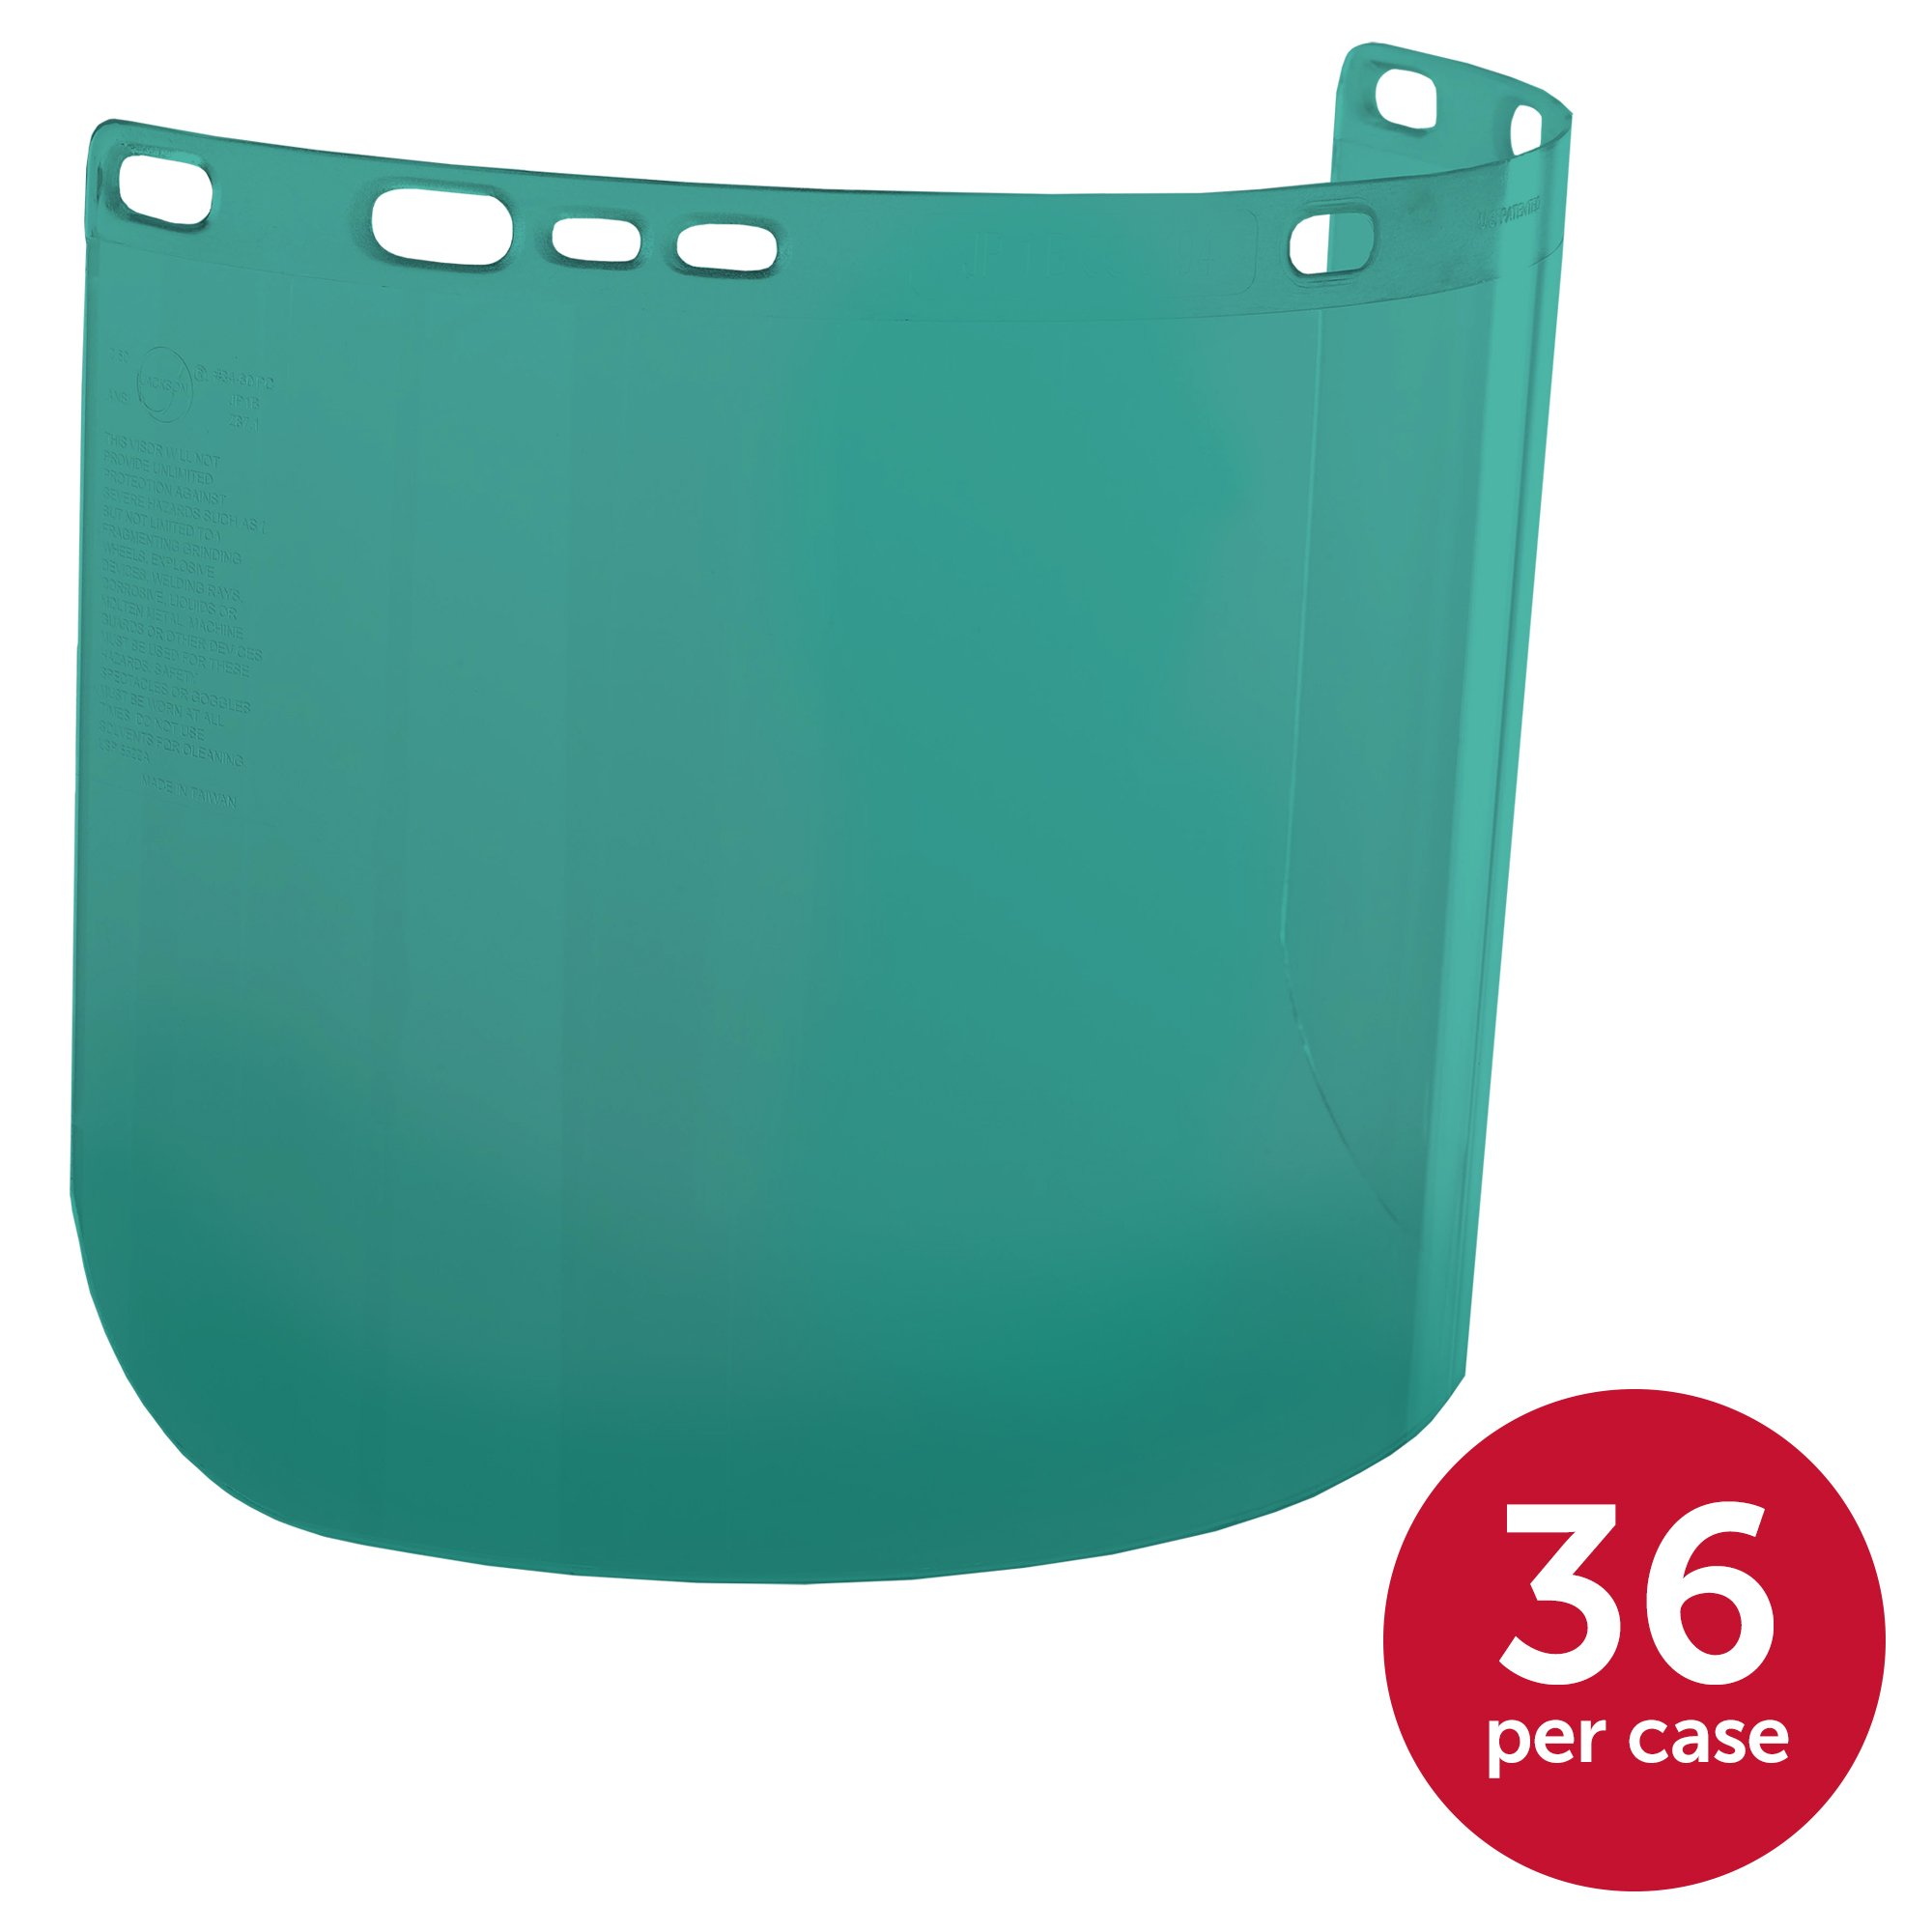 "Jackson Safety F20 High Impact Face Shield (29100), Polycarbonate, 8"" x 15.5"" x 0.04"", Dark Green, Face Protection, Unbound, 36 Shields / Case by Jackson Safety (Image #1)"